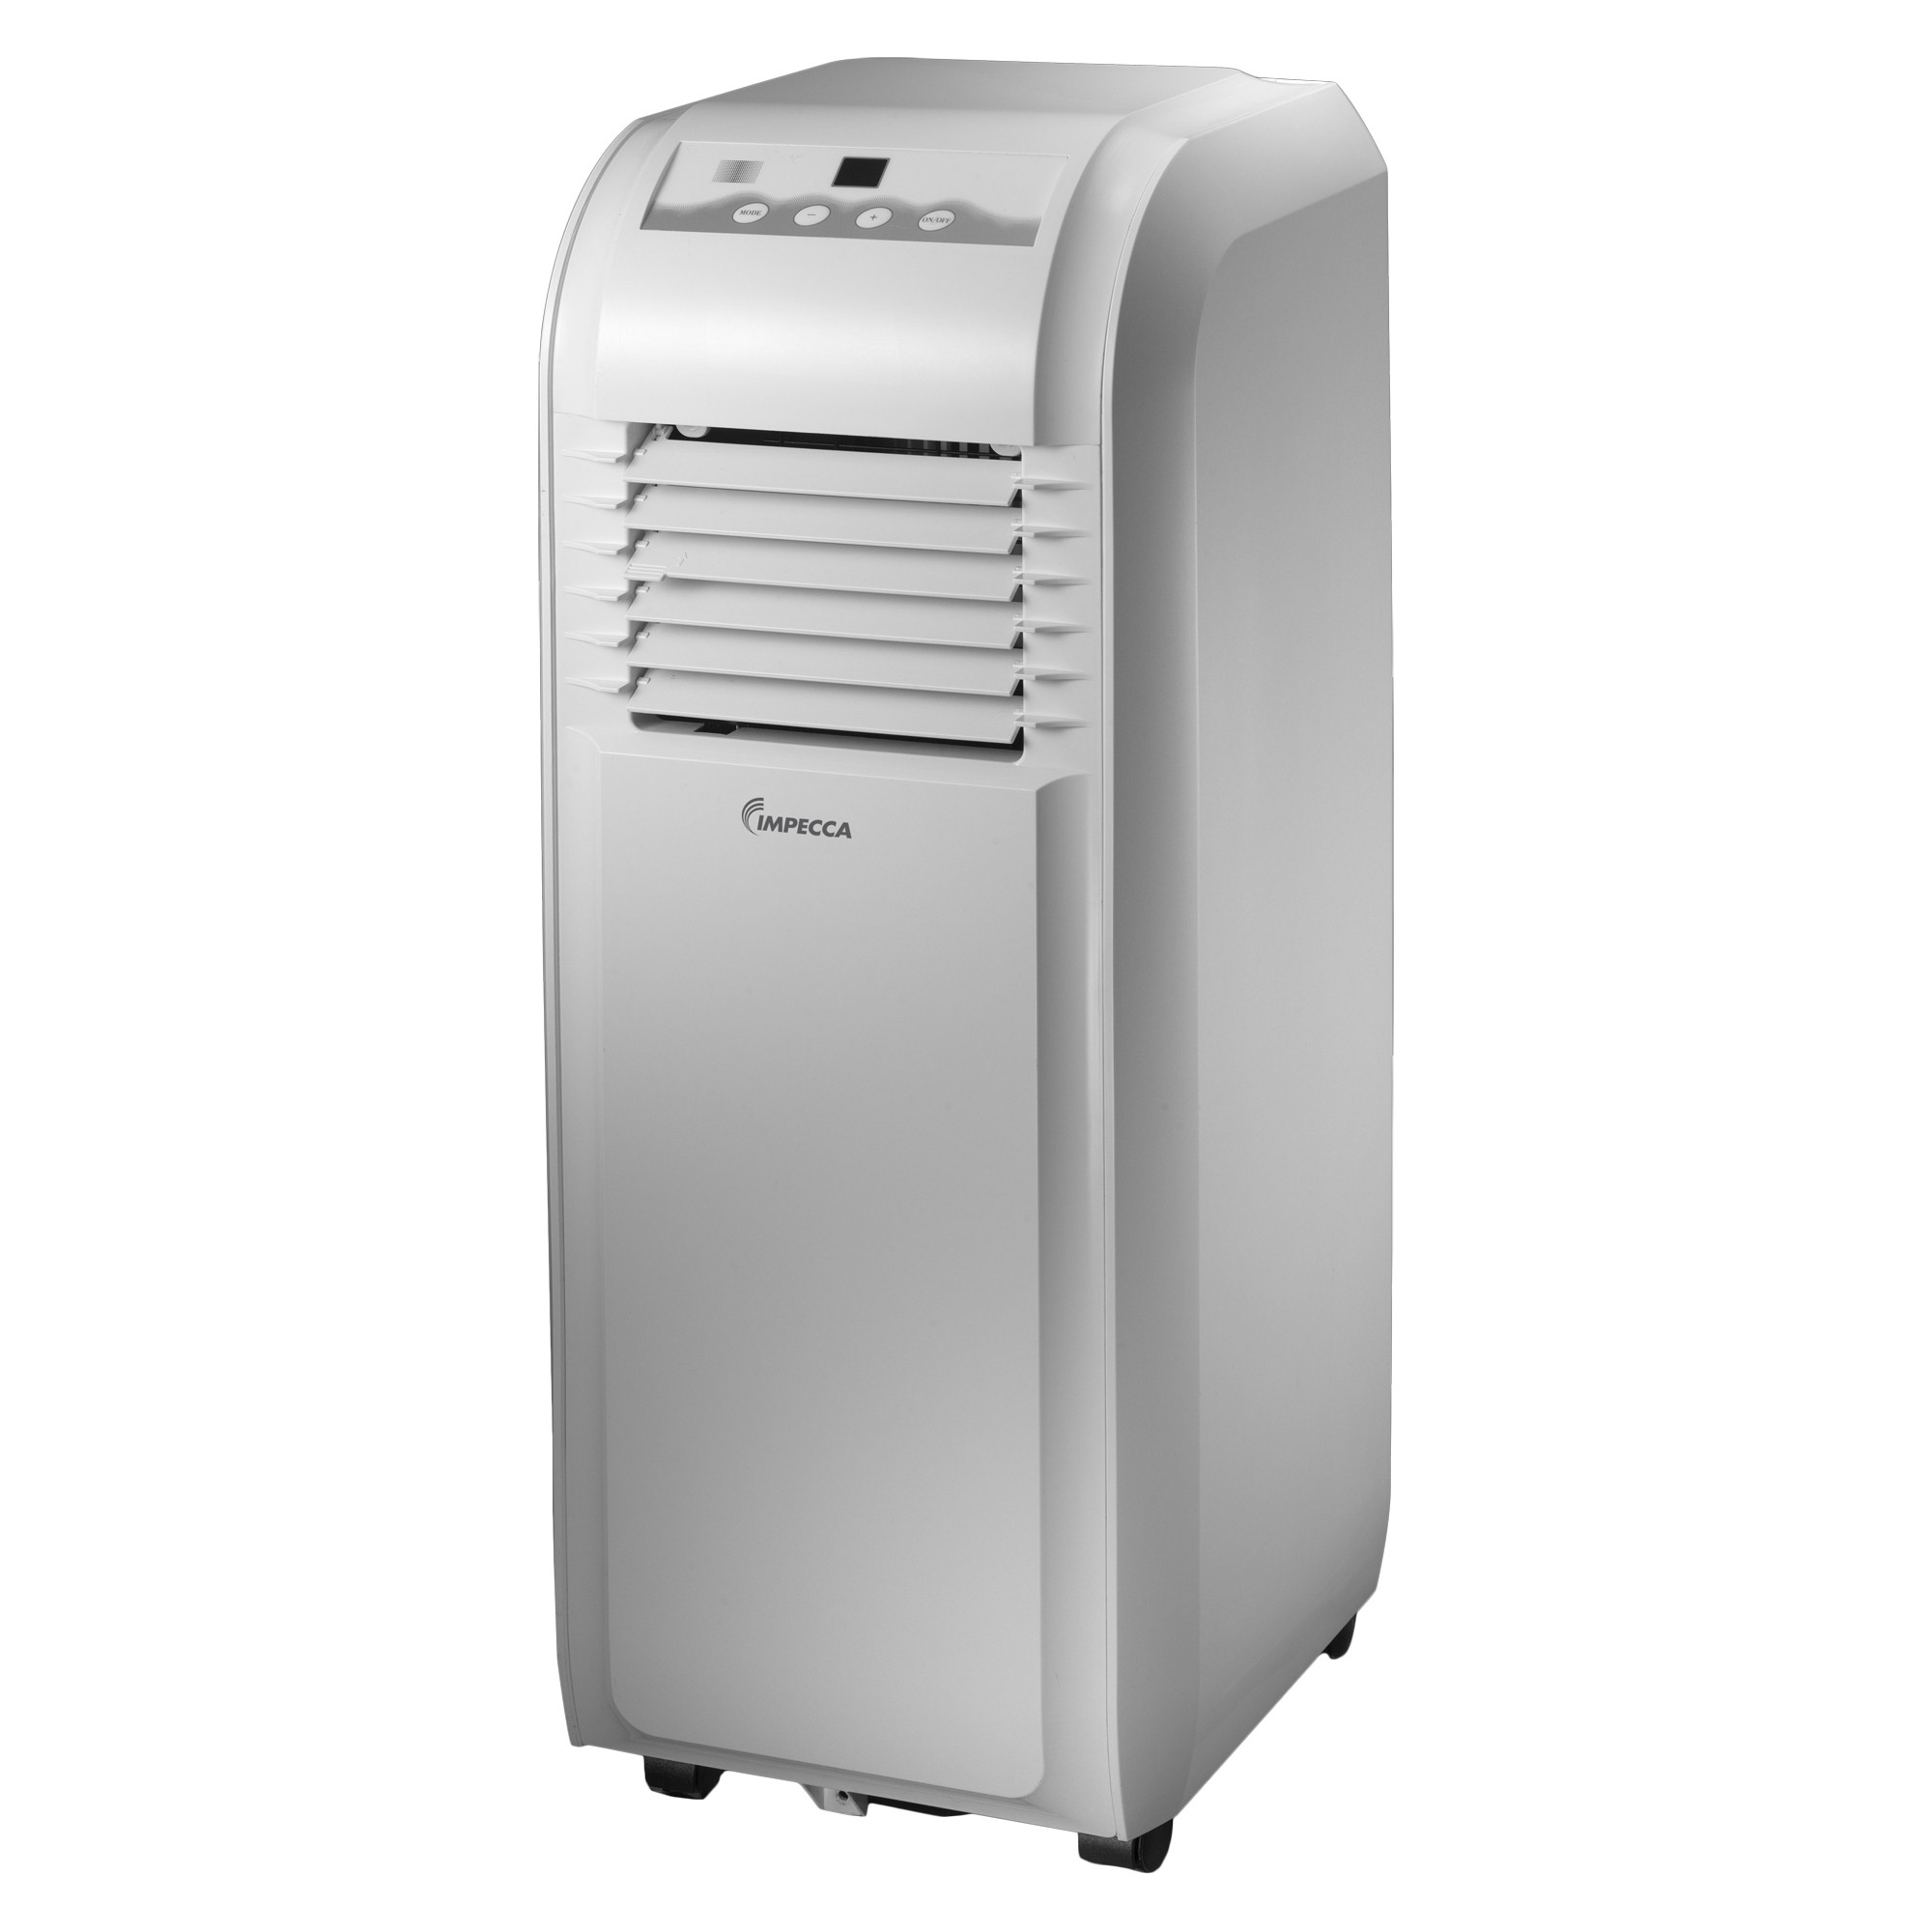 8,000 Btuh Portable Room Air Conditioner. Rooms For Rent In Boise. Creative Co-op Home Decor. Best Window Air Conditioner For Large Room. Rooms For Rent In Murrieta Ca. Farmhouse Modern Decor. Beige Living Room Furniture. Modern Living Room Carpet. Paint Room